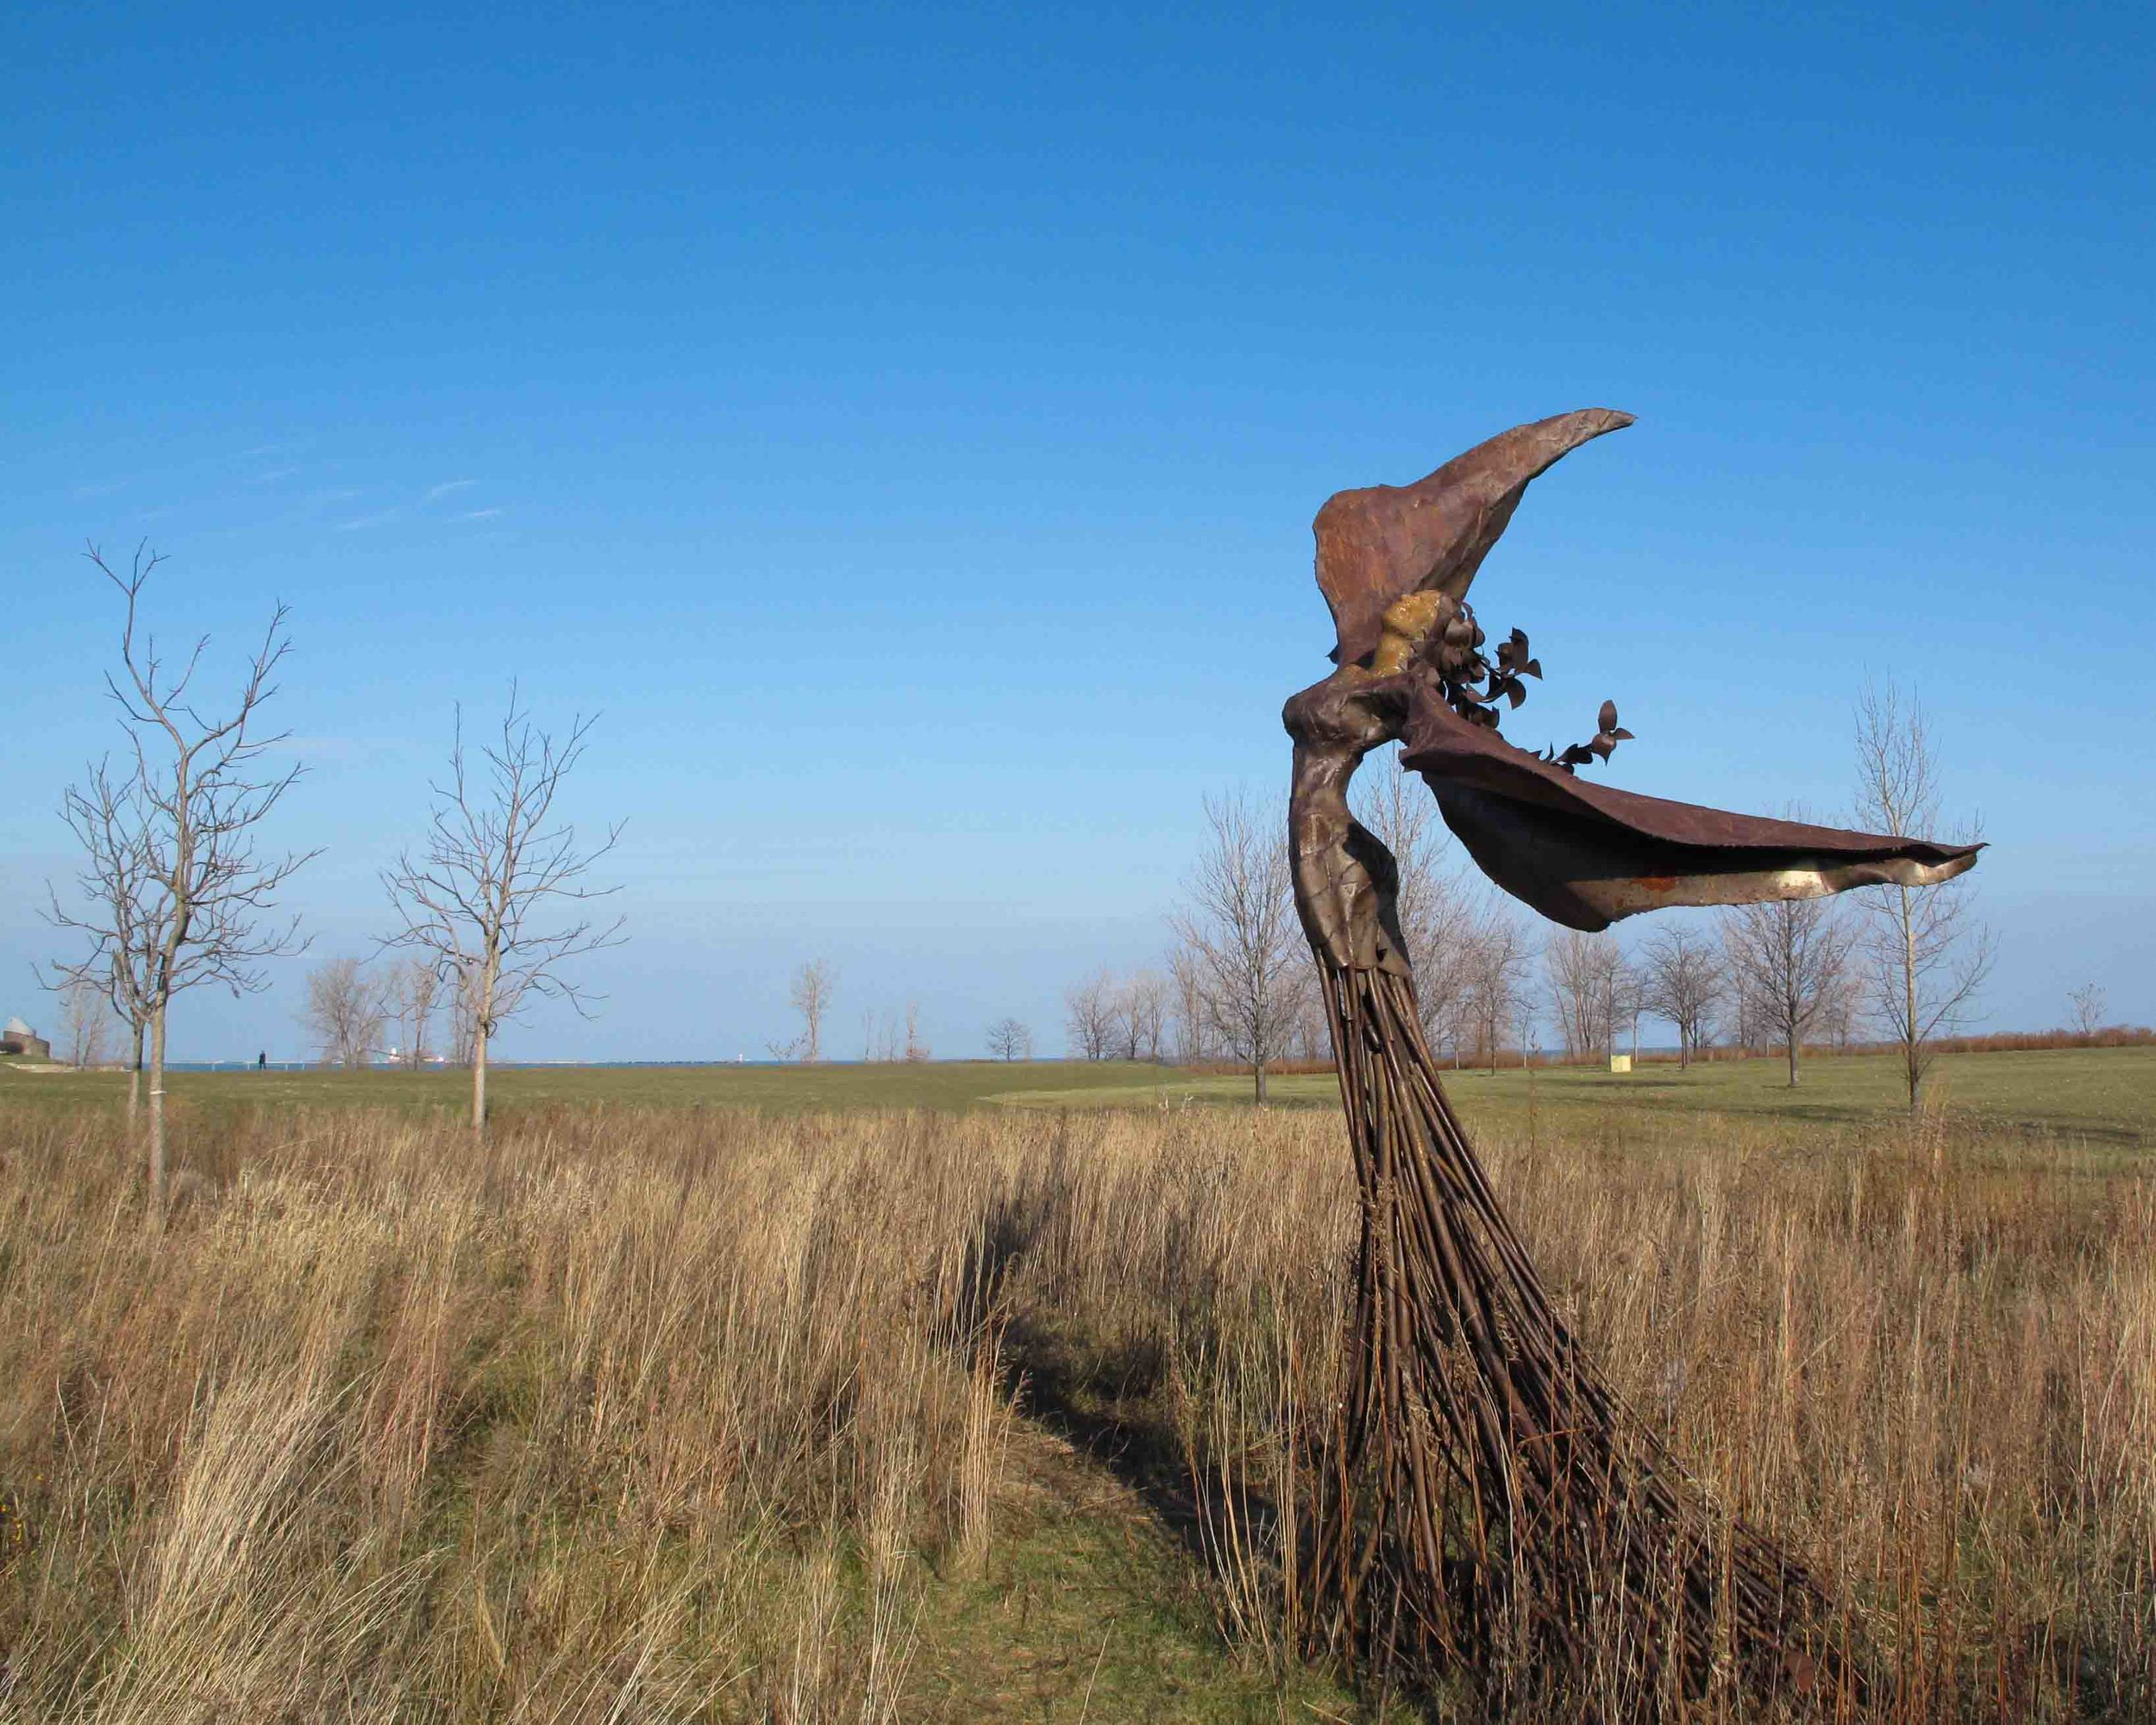 A steel fairy I found in a field. Never heard of a steel fairy but this serves as proof of their existence!